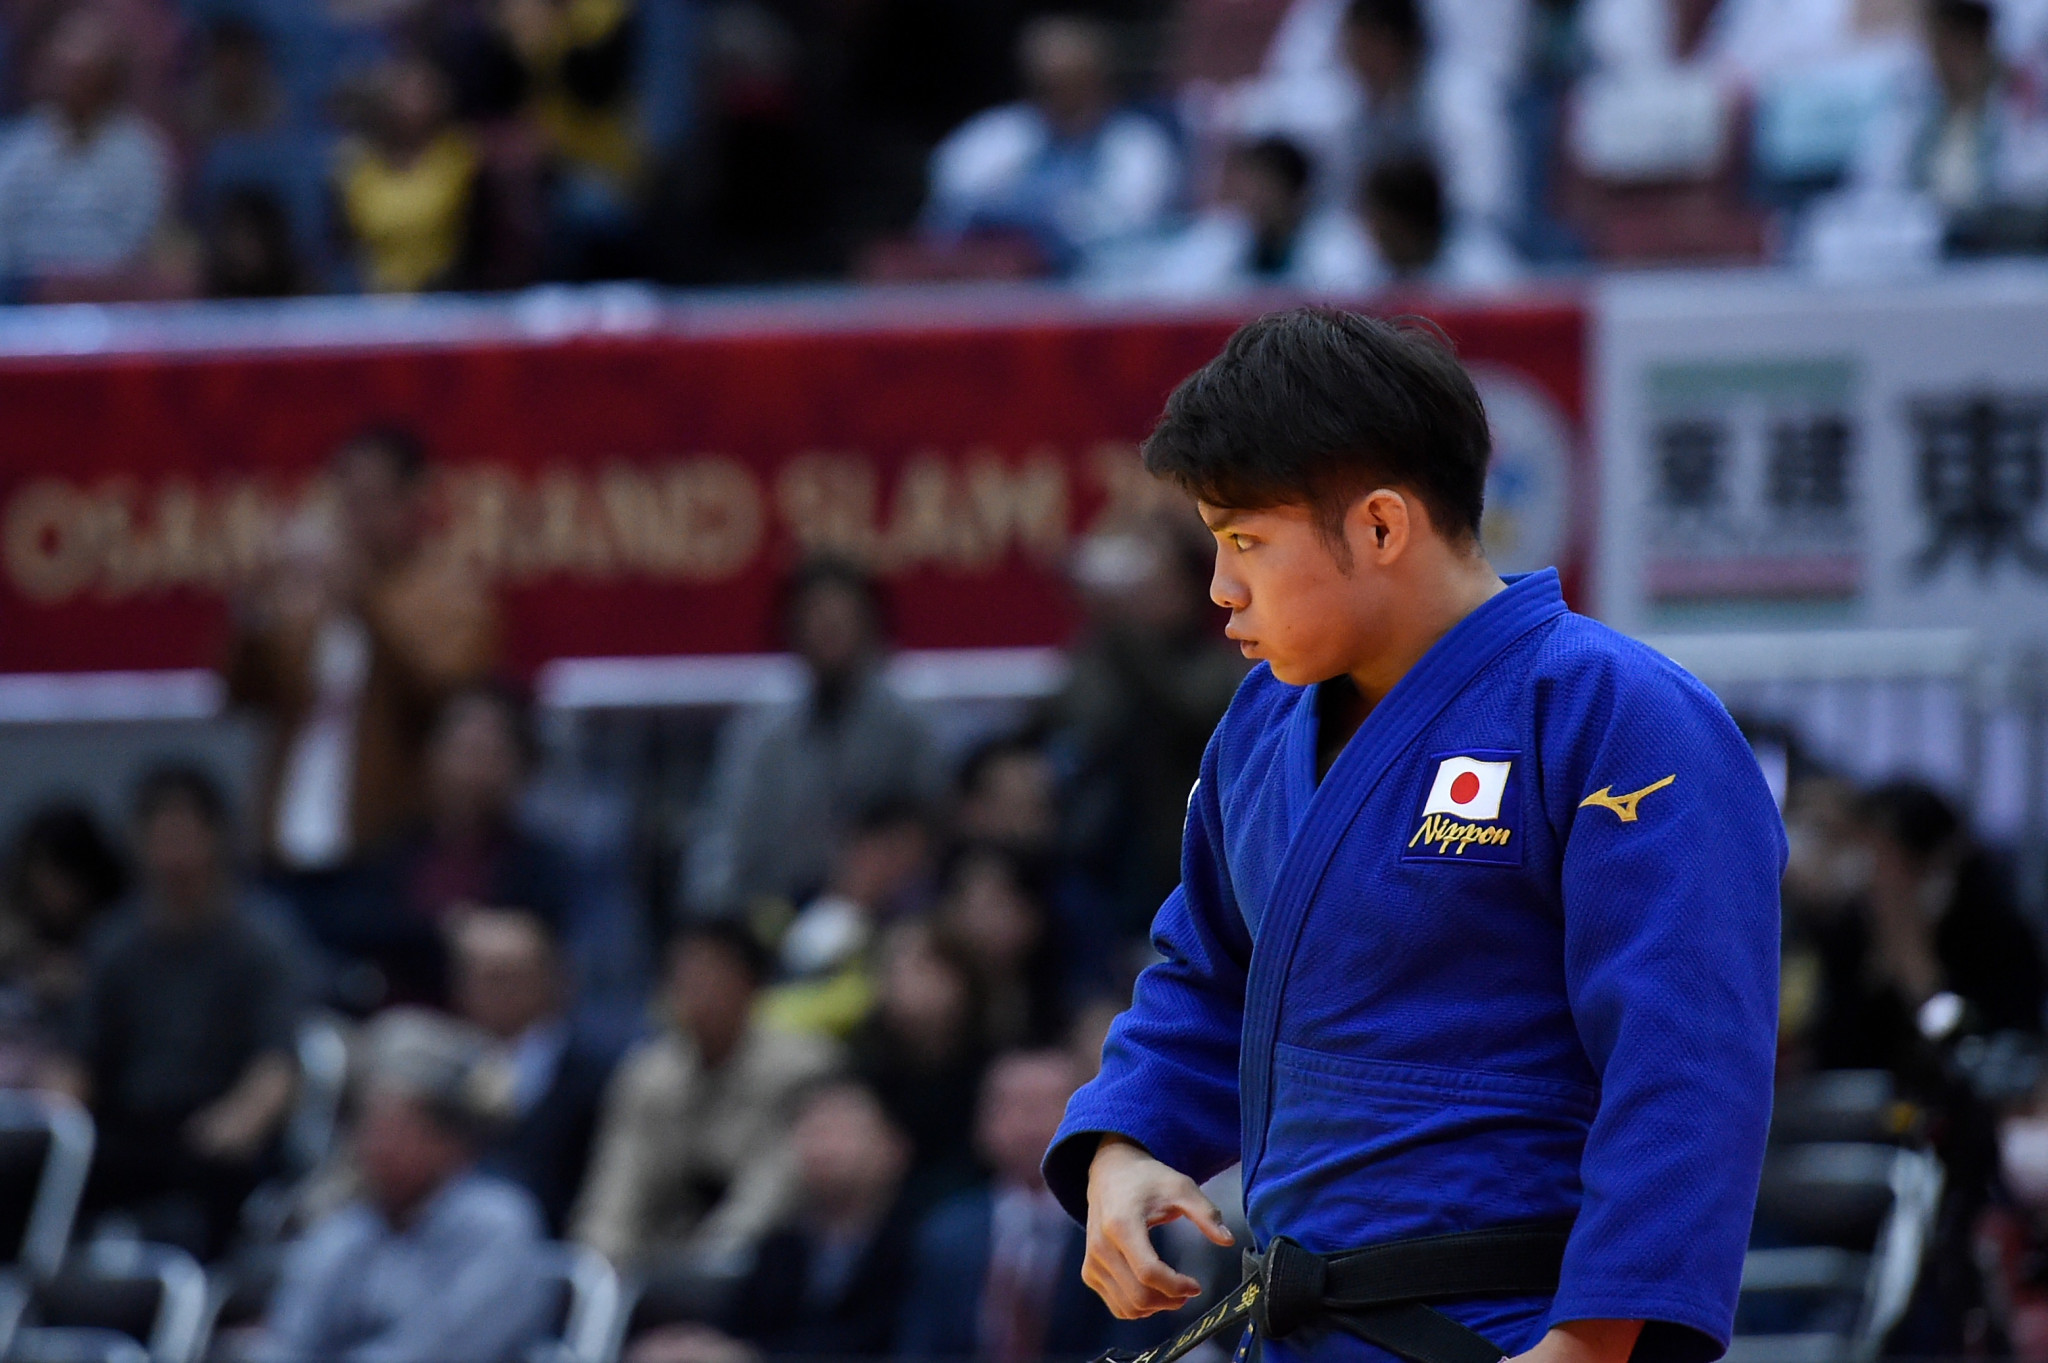 Hifumi Abe completes Japan's judo team for Tokyo 2020 ©Getty Images